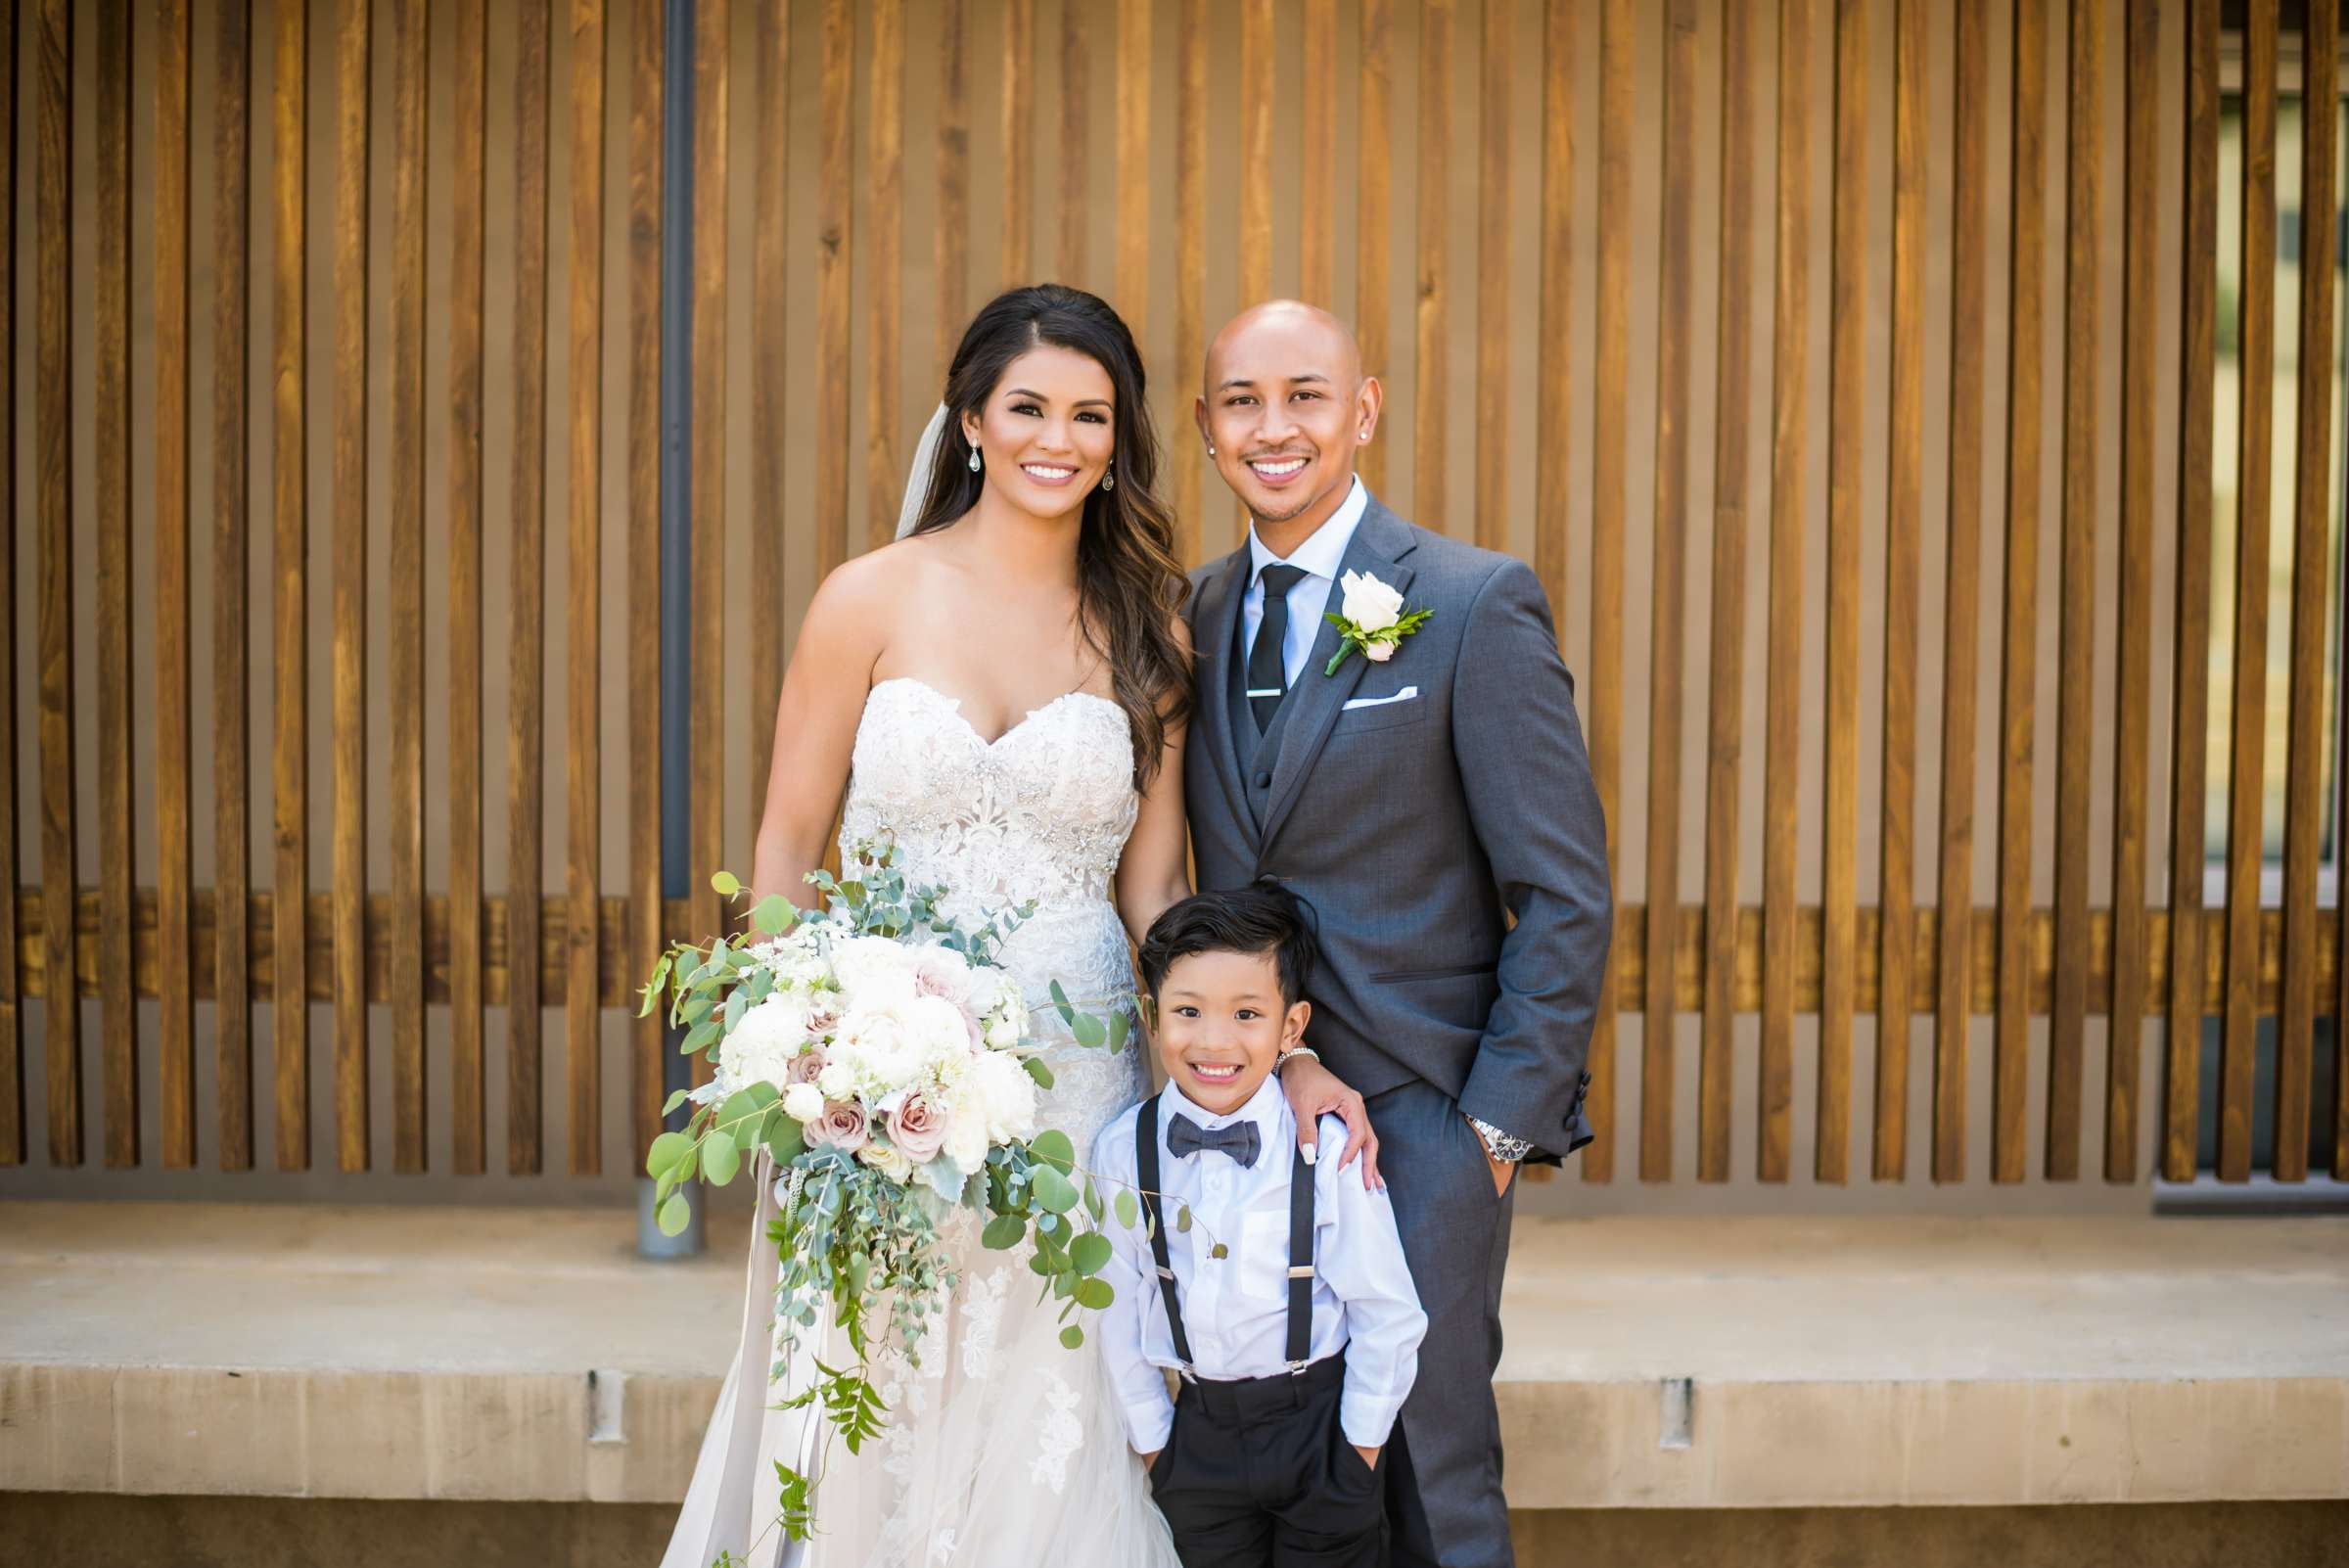 Scripps Seaside Forum Wedding coordinated by Lavish Weddings, Cindy and Justin Wedding Photo #381761 by True Photography